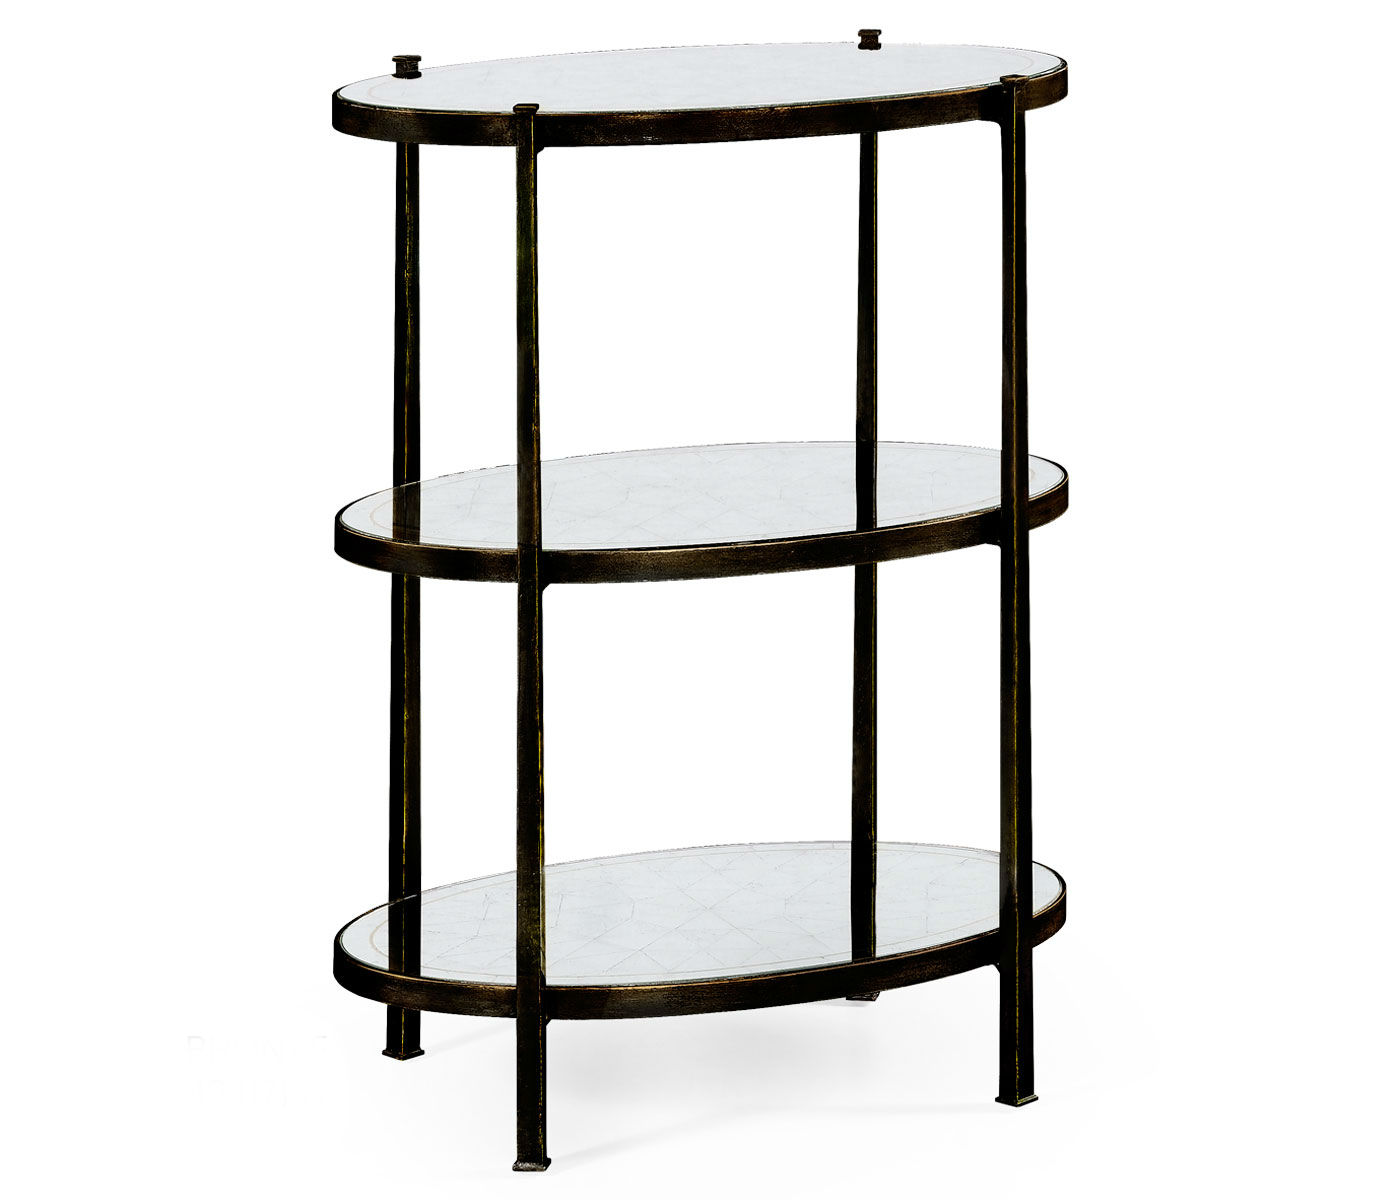 tier table tables mirrored side tiered metal accent elegant tall antiqued bronze partner end console coffee available hospitality residential ashley furniture wesling large round